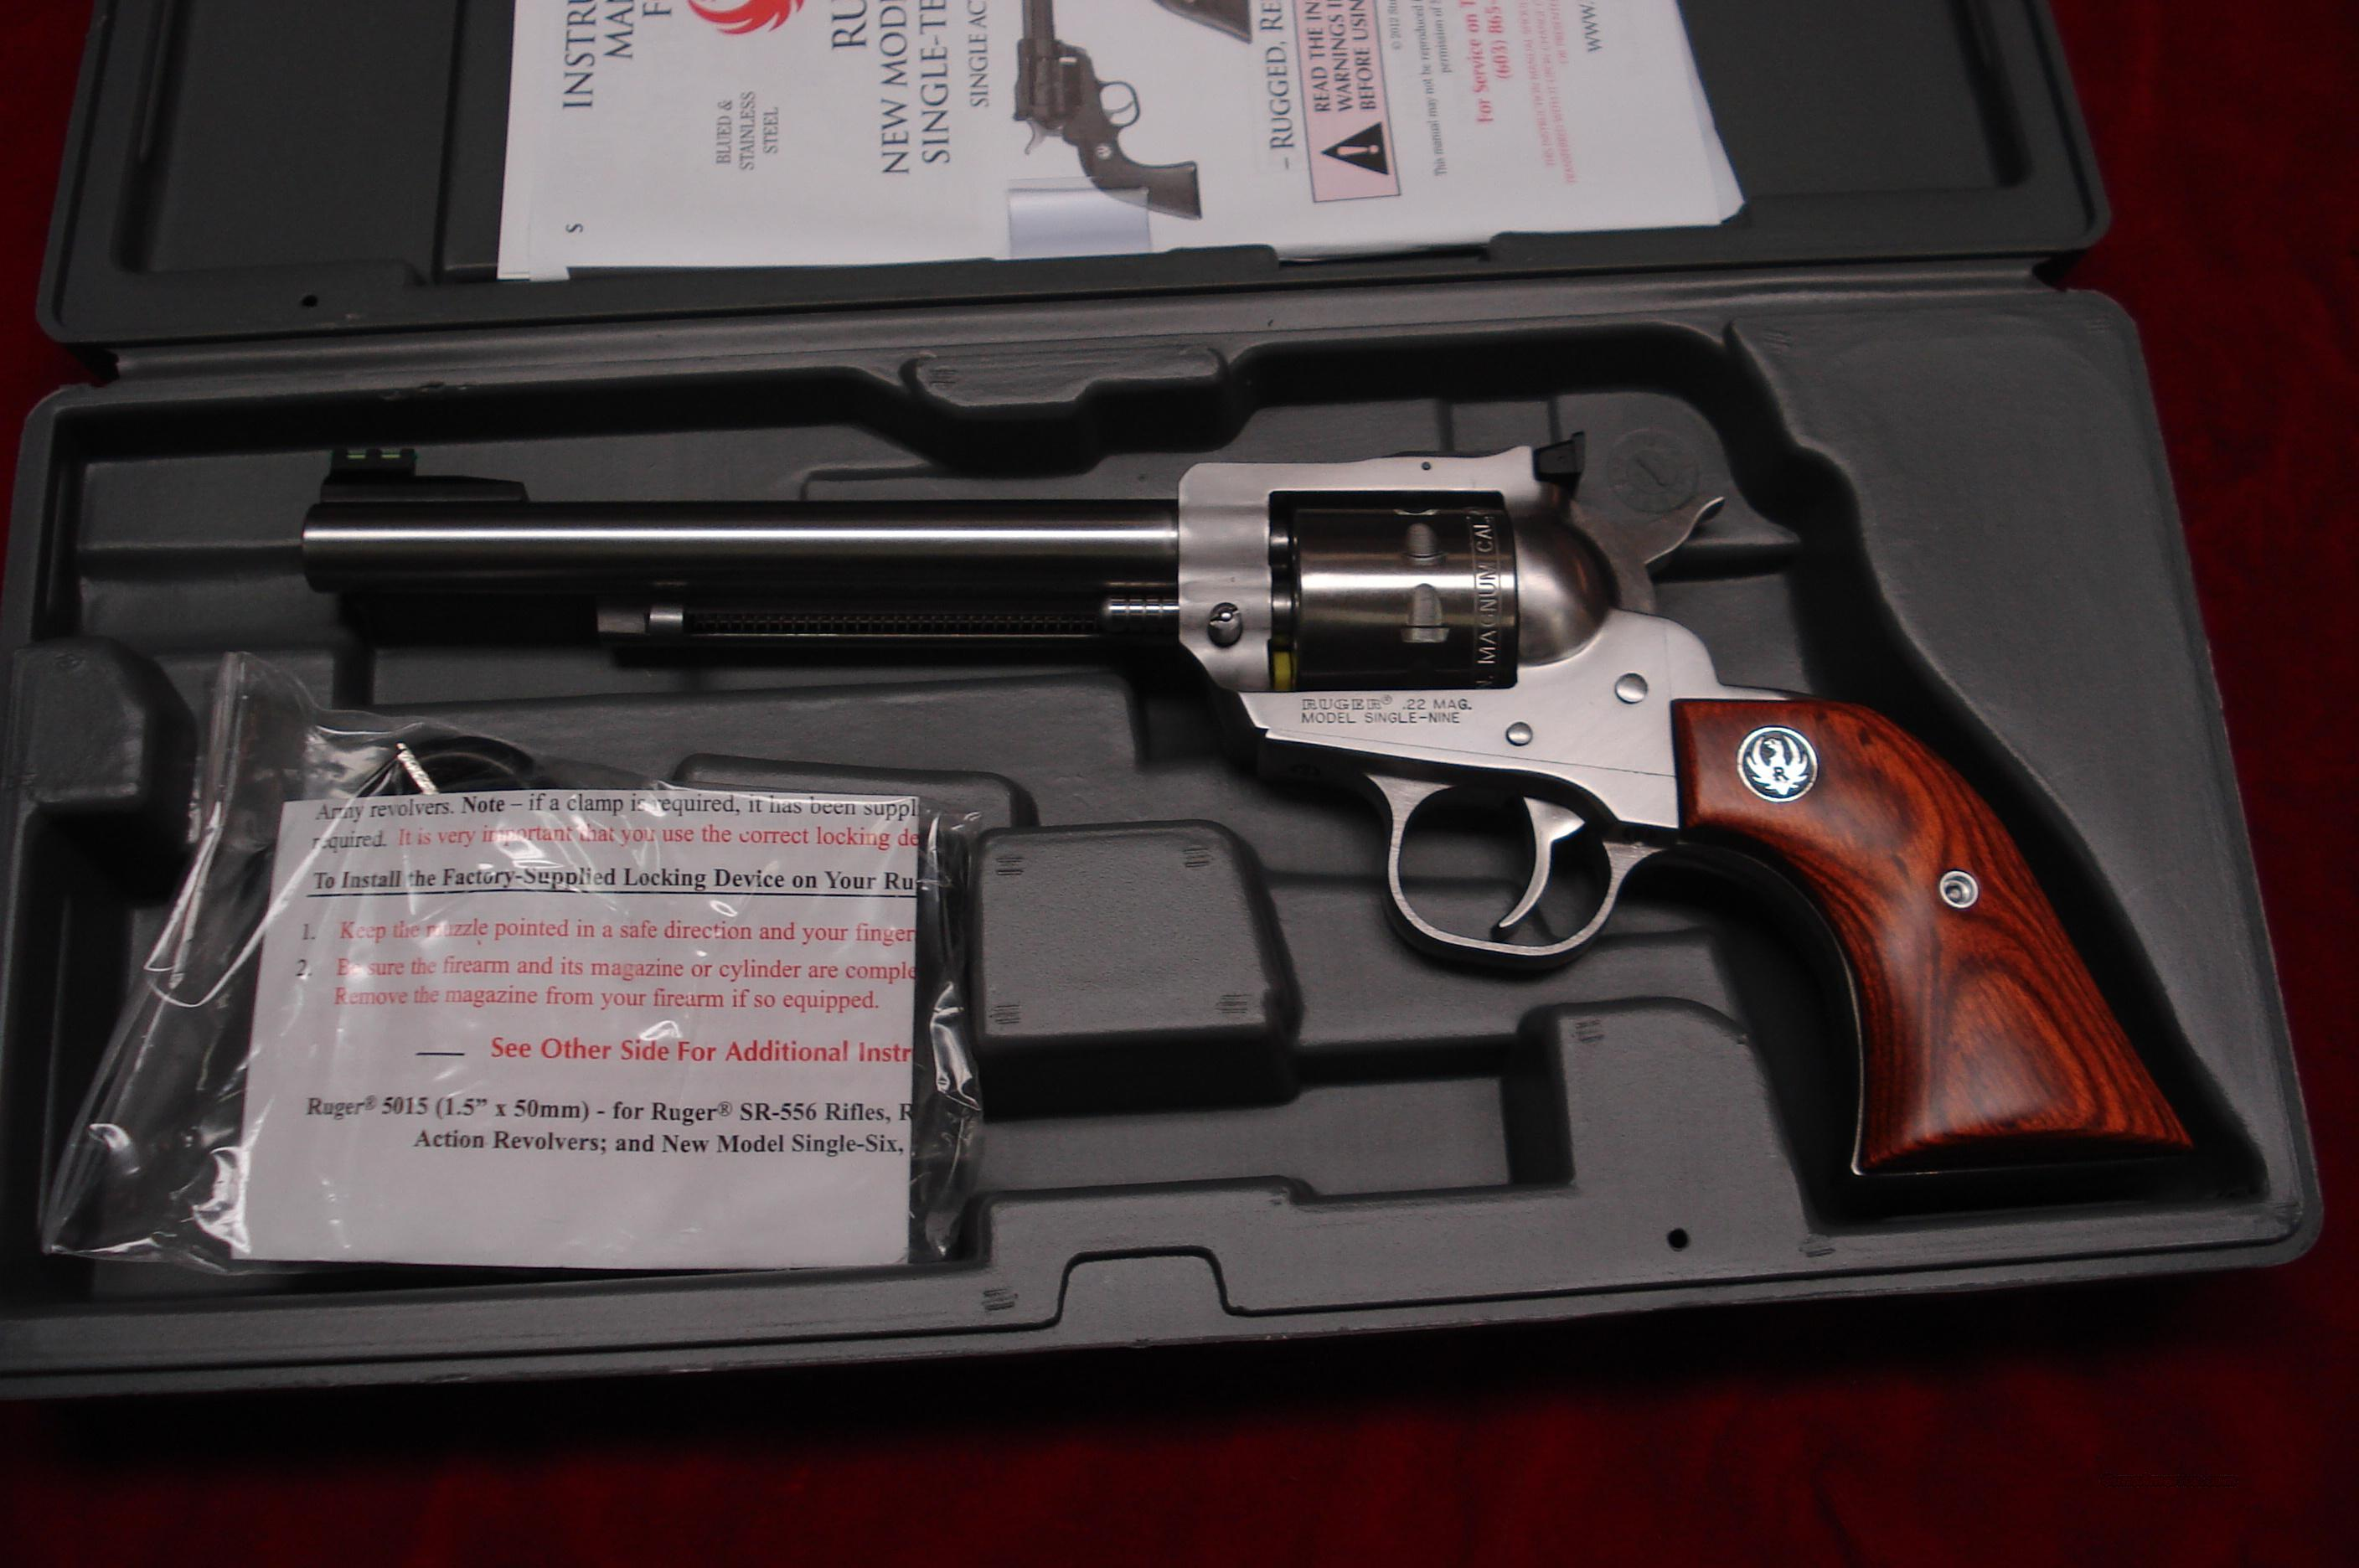 "RUGER SUPER SINGLE NINE 6.5"" STAINLESS 22MAG. CAL. NEW (KNR-6-9M)  Guns > Pistols > Ruger Single Action Revolvers > Single Six Type"